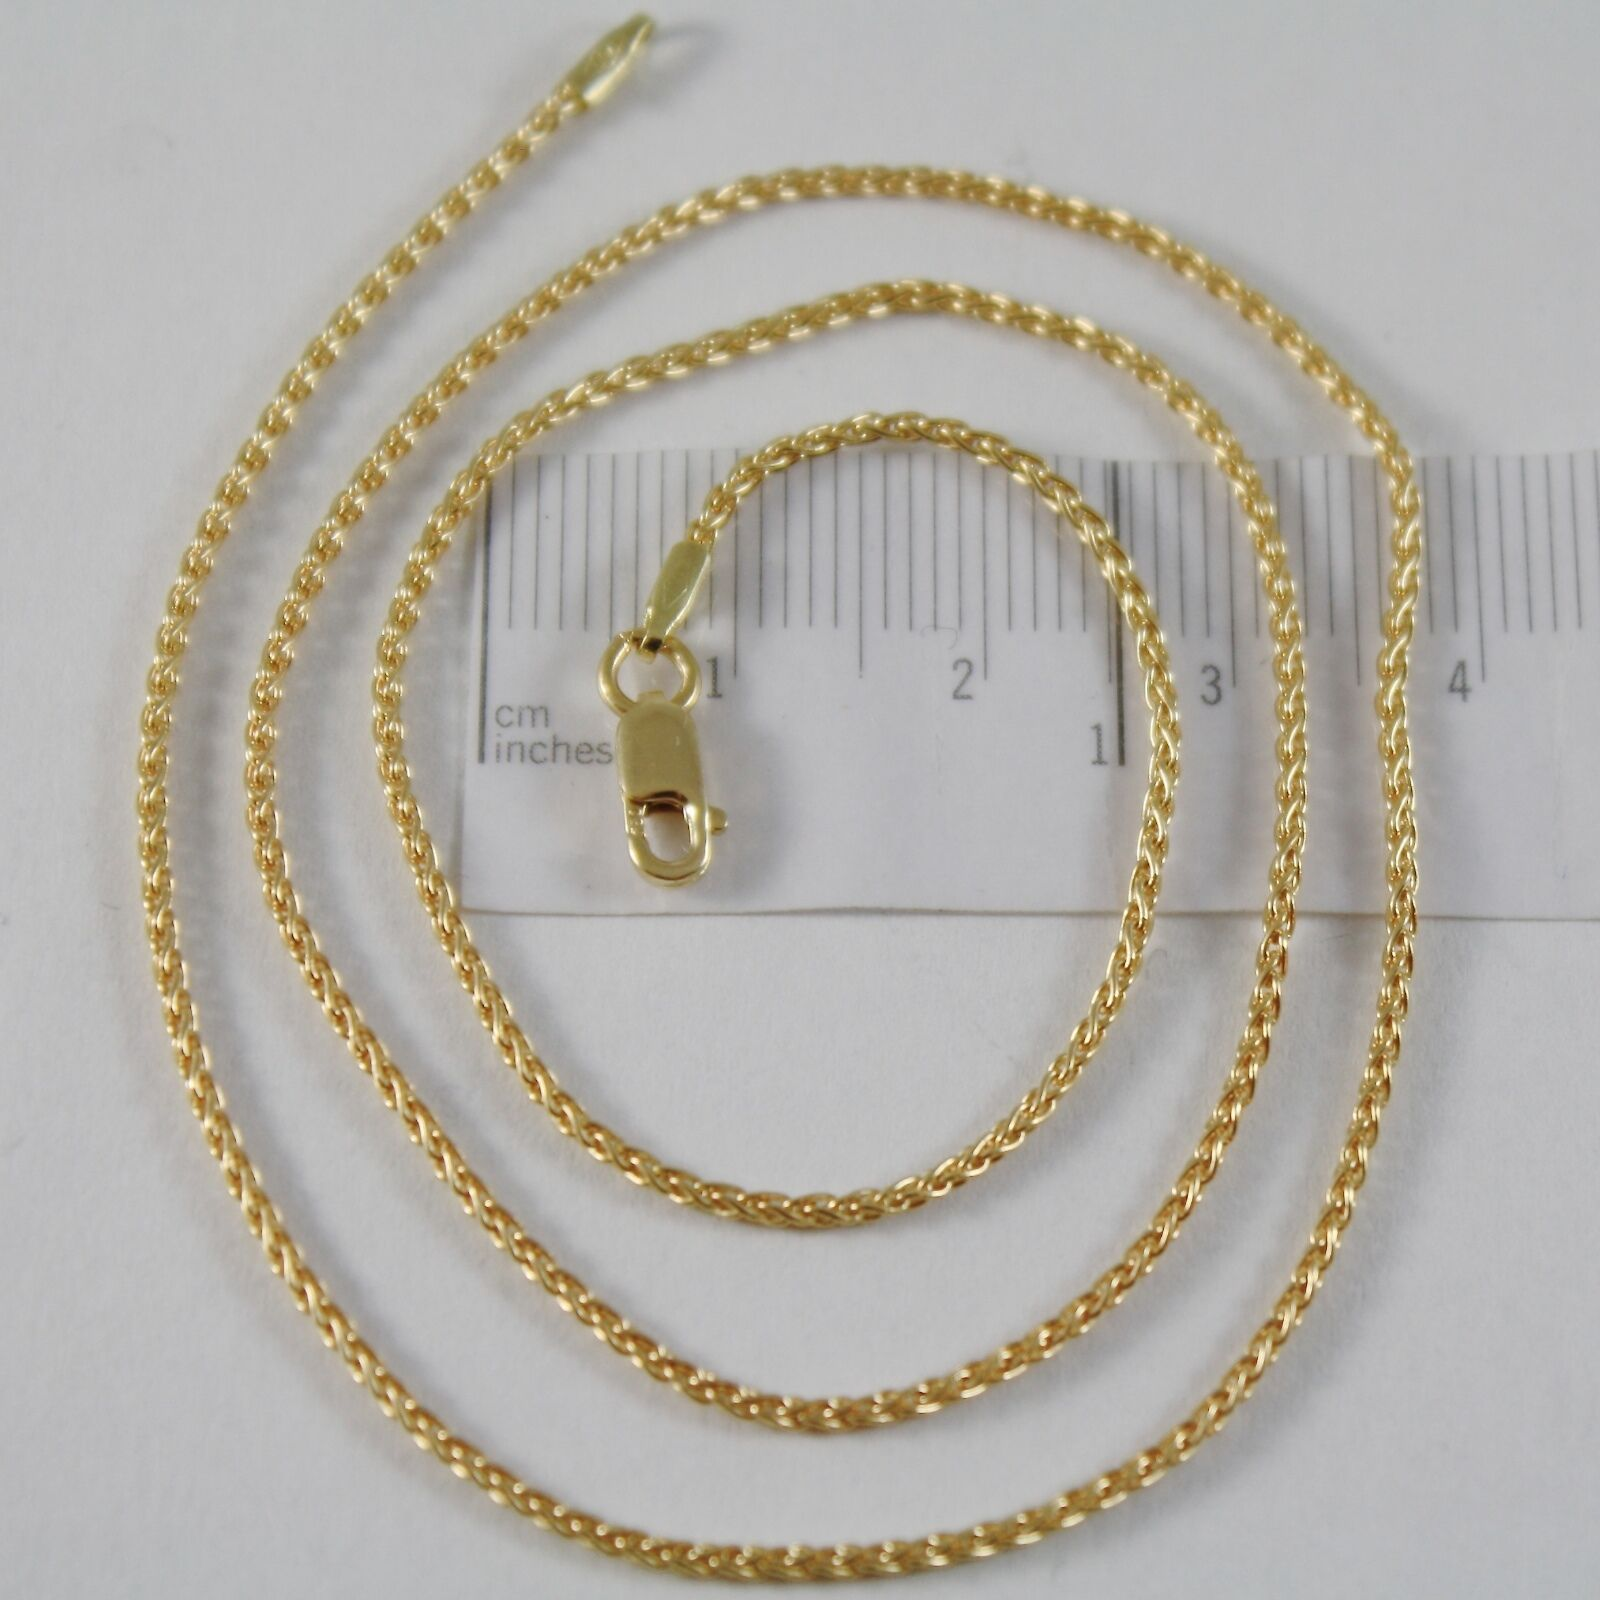 SOLID 18K YELLOW GOLD SPIGA WHEAT EAR CHAIN 16 INCHES, 1.5 MM, MADE IN ITALY